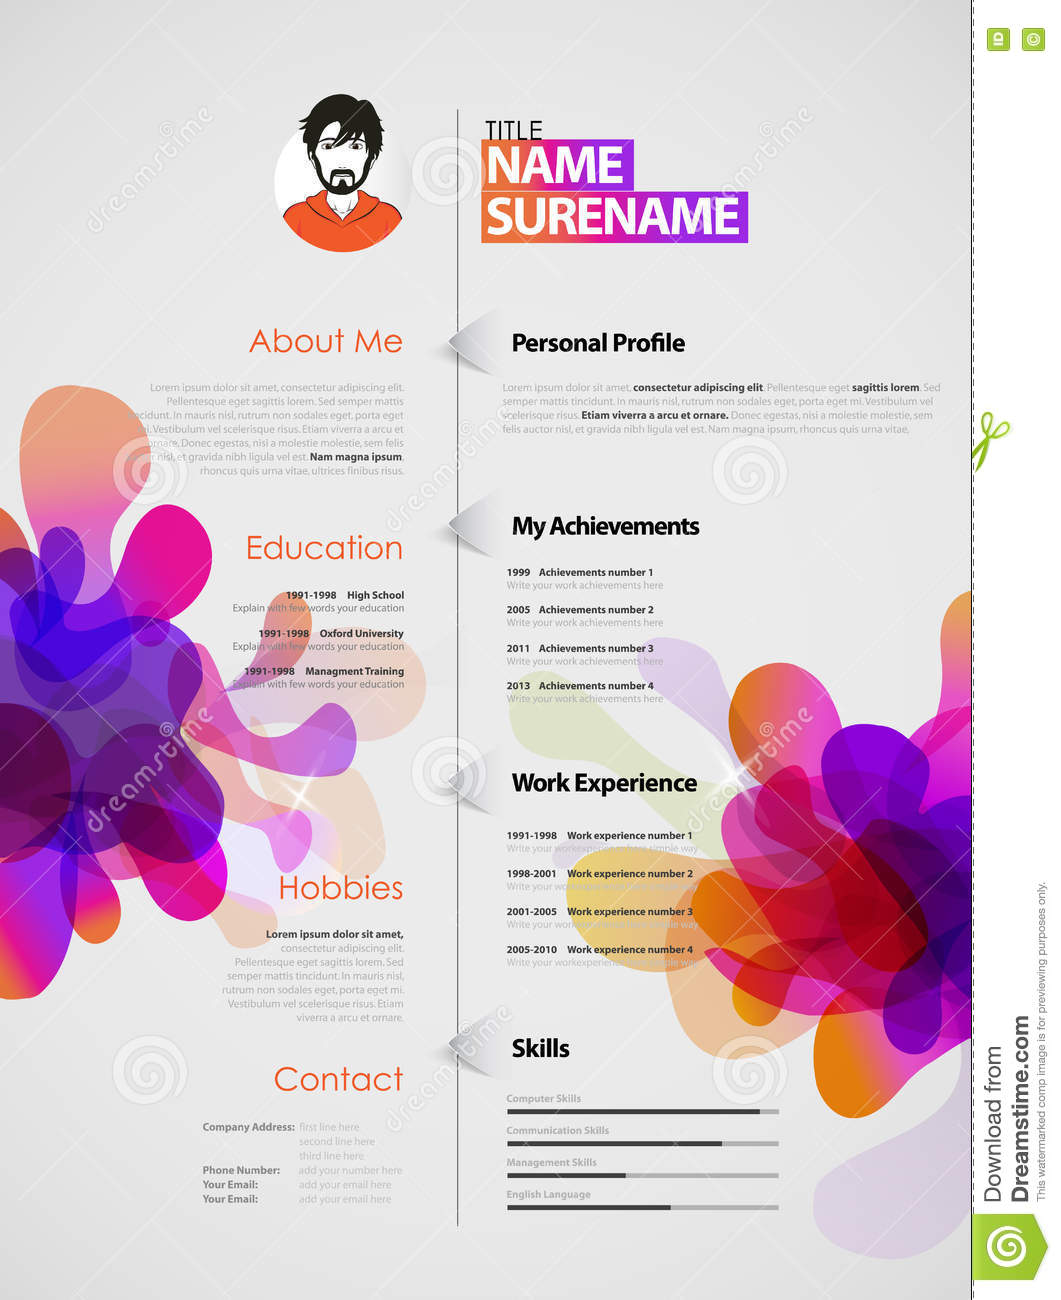 Creative Color Rich CV Resume Template With Colorful Abstract Splash